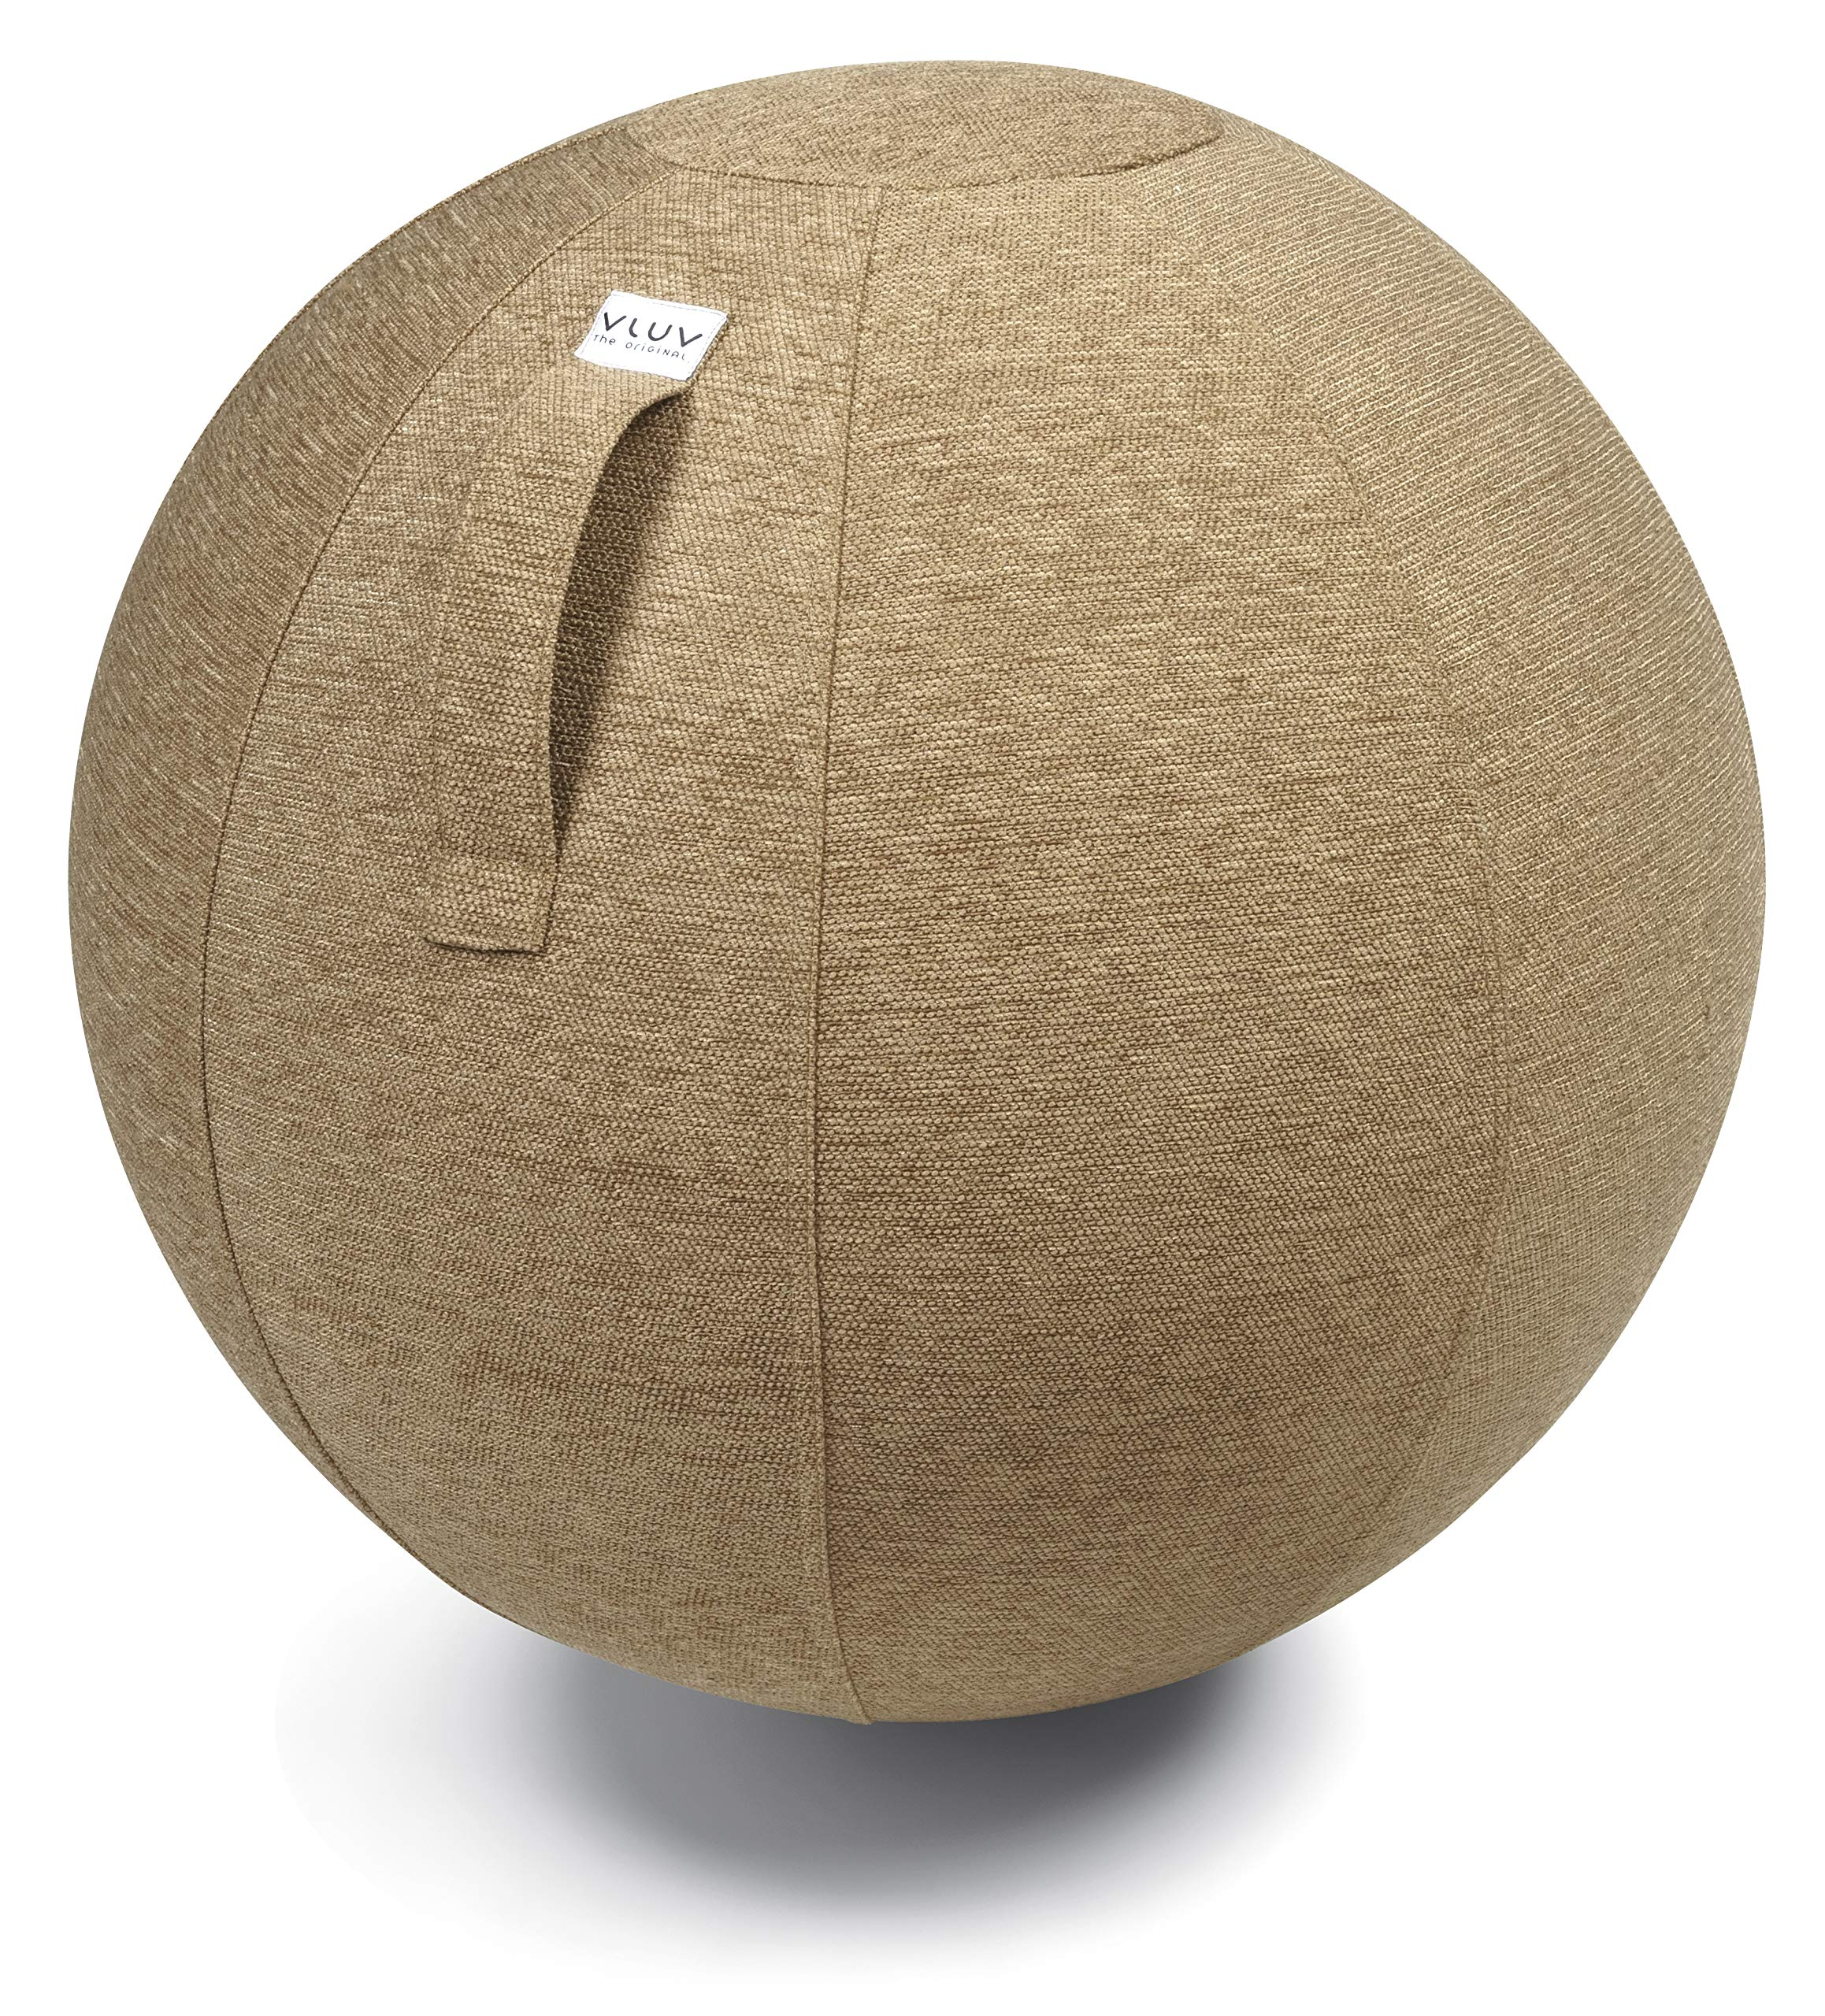 VLUV STOV Premium Quality Self-Standing Sitting Ball with Handle - Home or Office Chair and Exercise Ball for Yoga, Back Stretching, or Gym- Upholstery Fabric Stability Ball (Macchiato, 25.6'') by VLUV